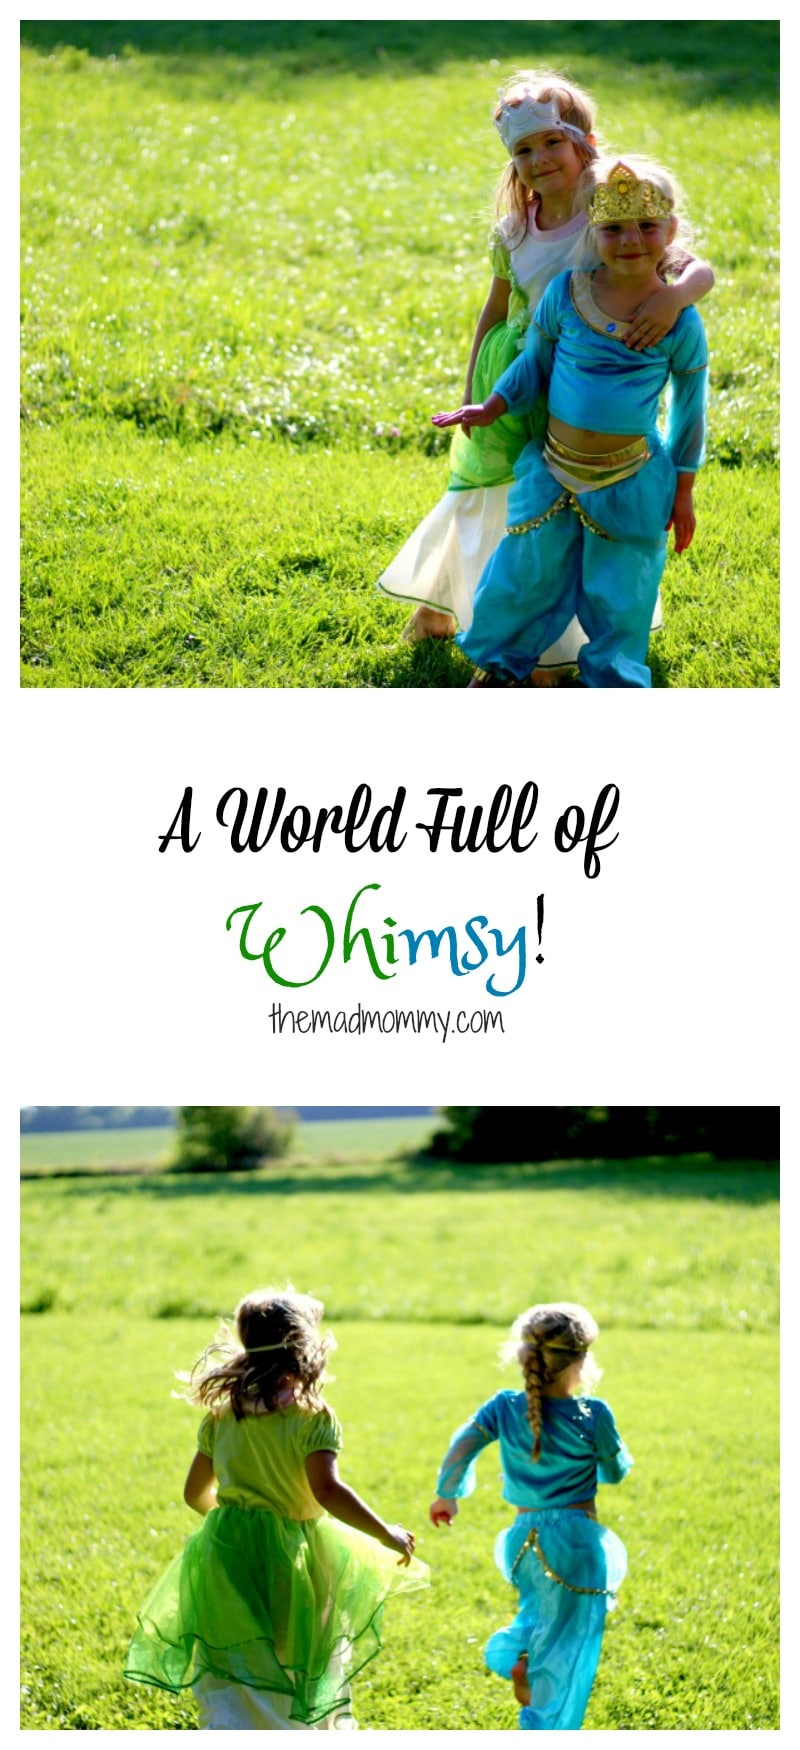 The dress-up clothes from The Whimsy Factory are beautiful and definitely capture the little details!